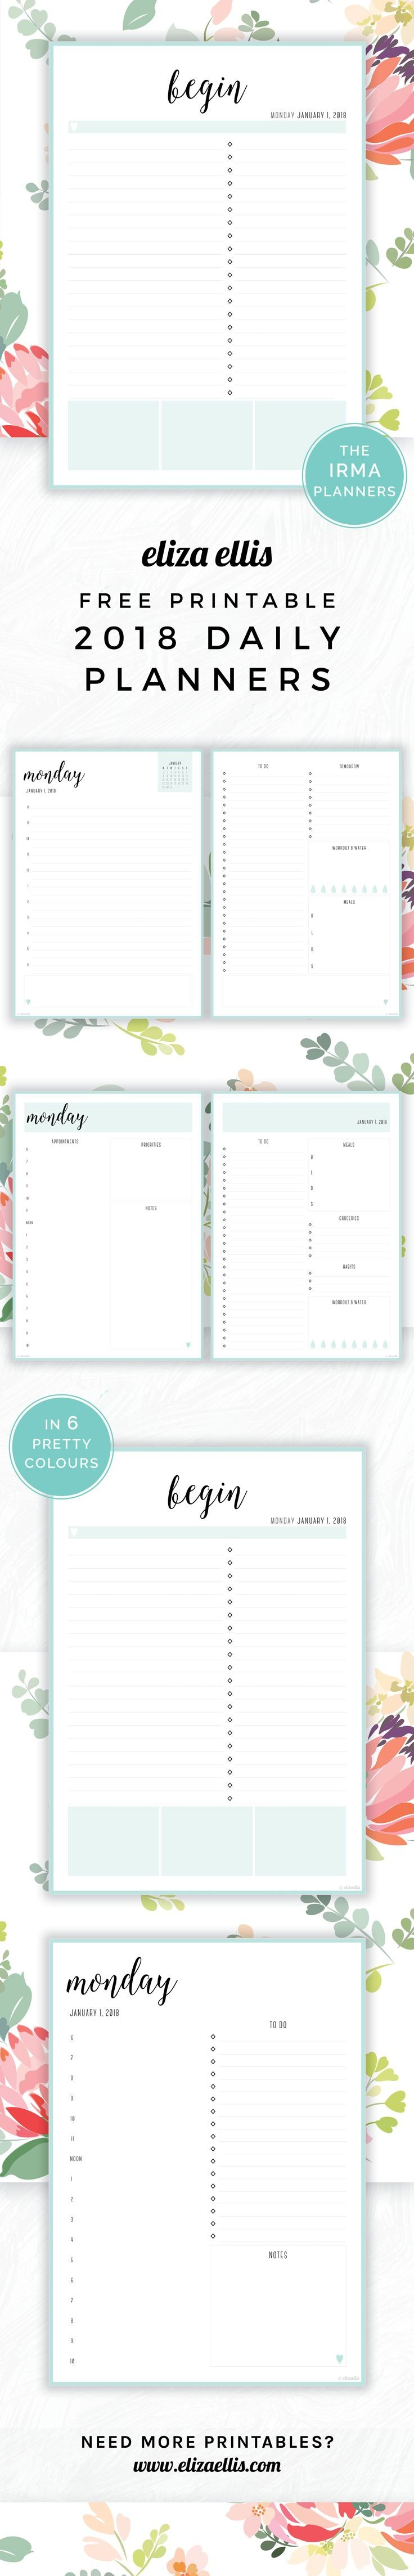 Free Printable 2018 Irma Daily Planners in Sea Eliza Ellis Awesome 2018 daily planners and diaries that are absolutely free print to A4 or A5 and